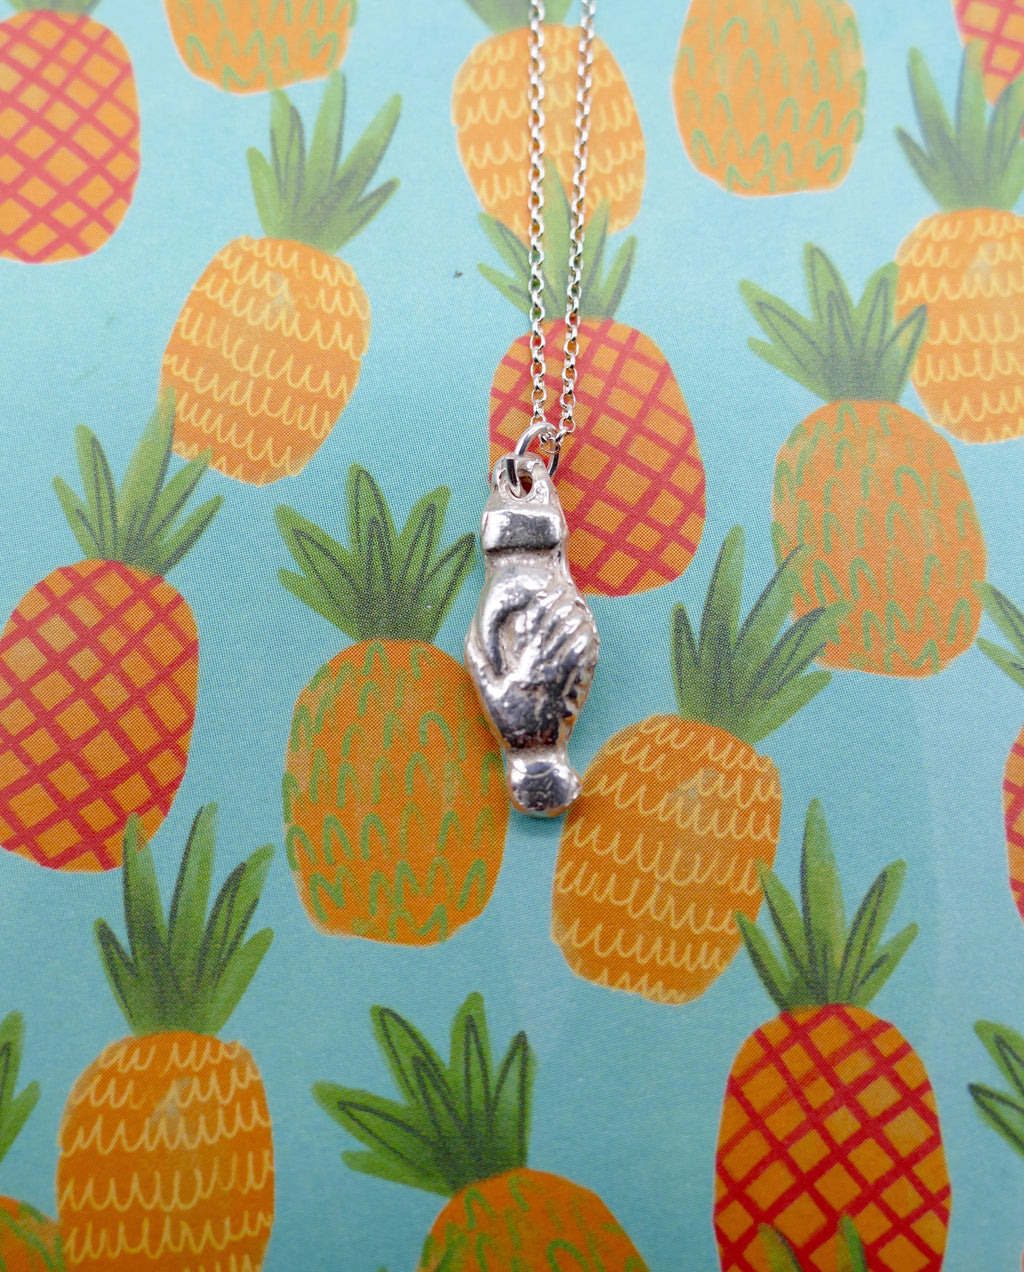 Hands milagro necklace